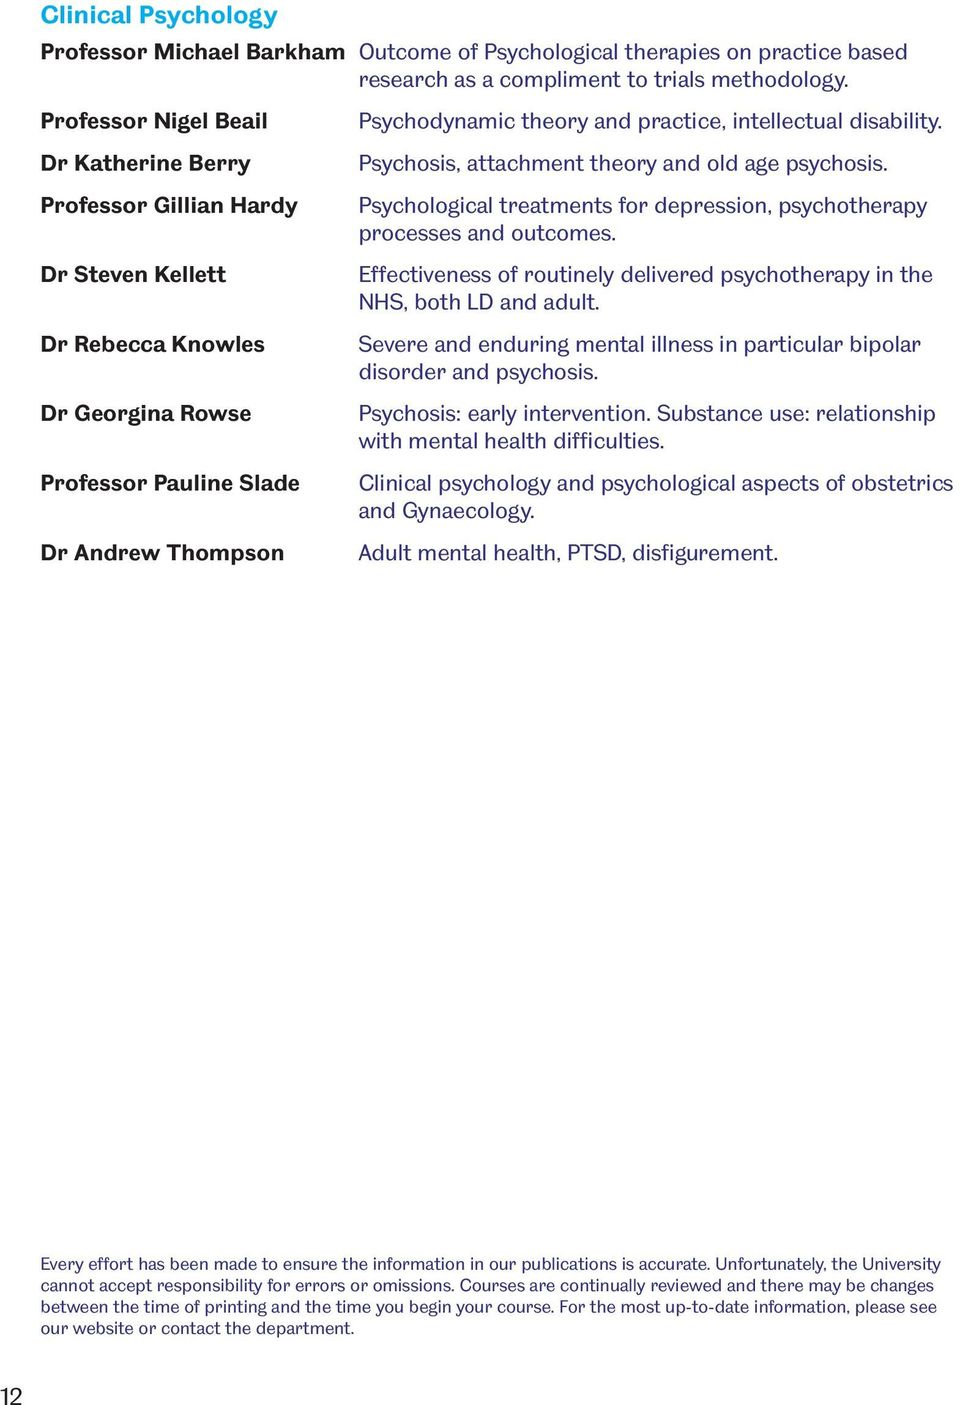 Professor Gillian Hardy Psychological treatments for depression, psychotherapy processes and outcomes.